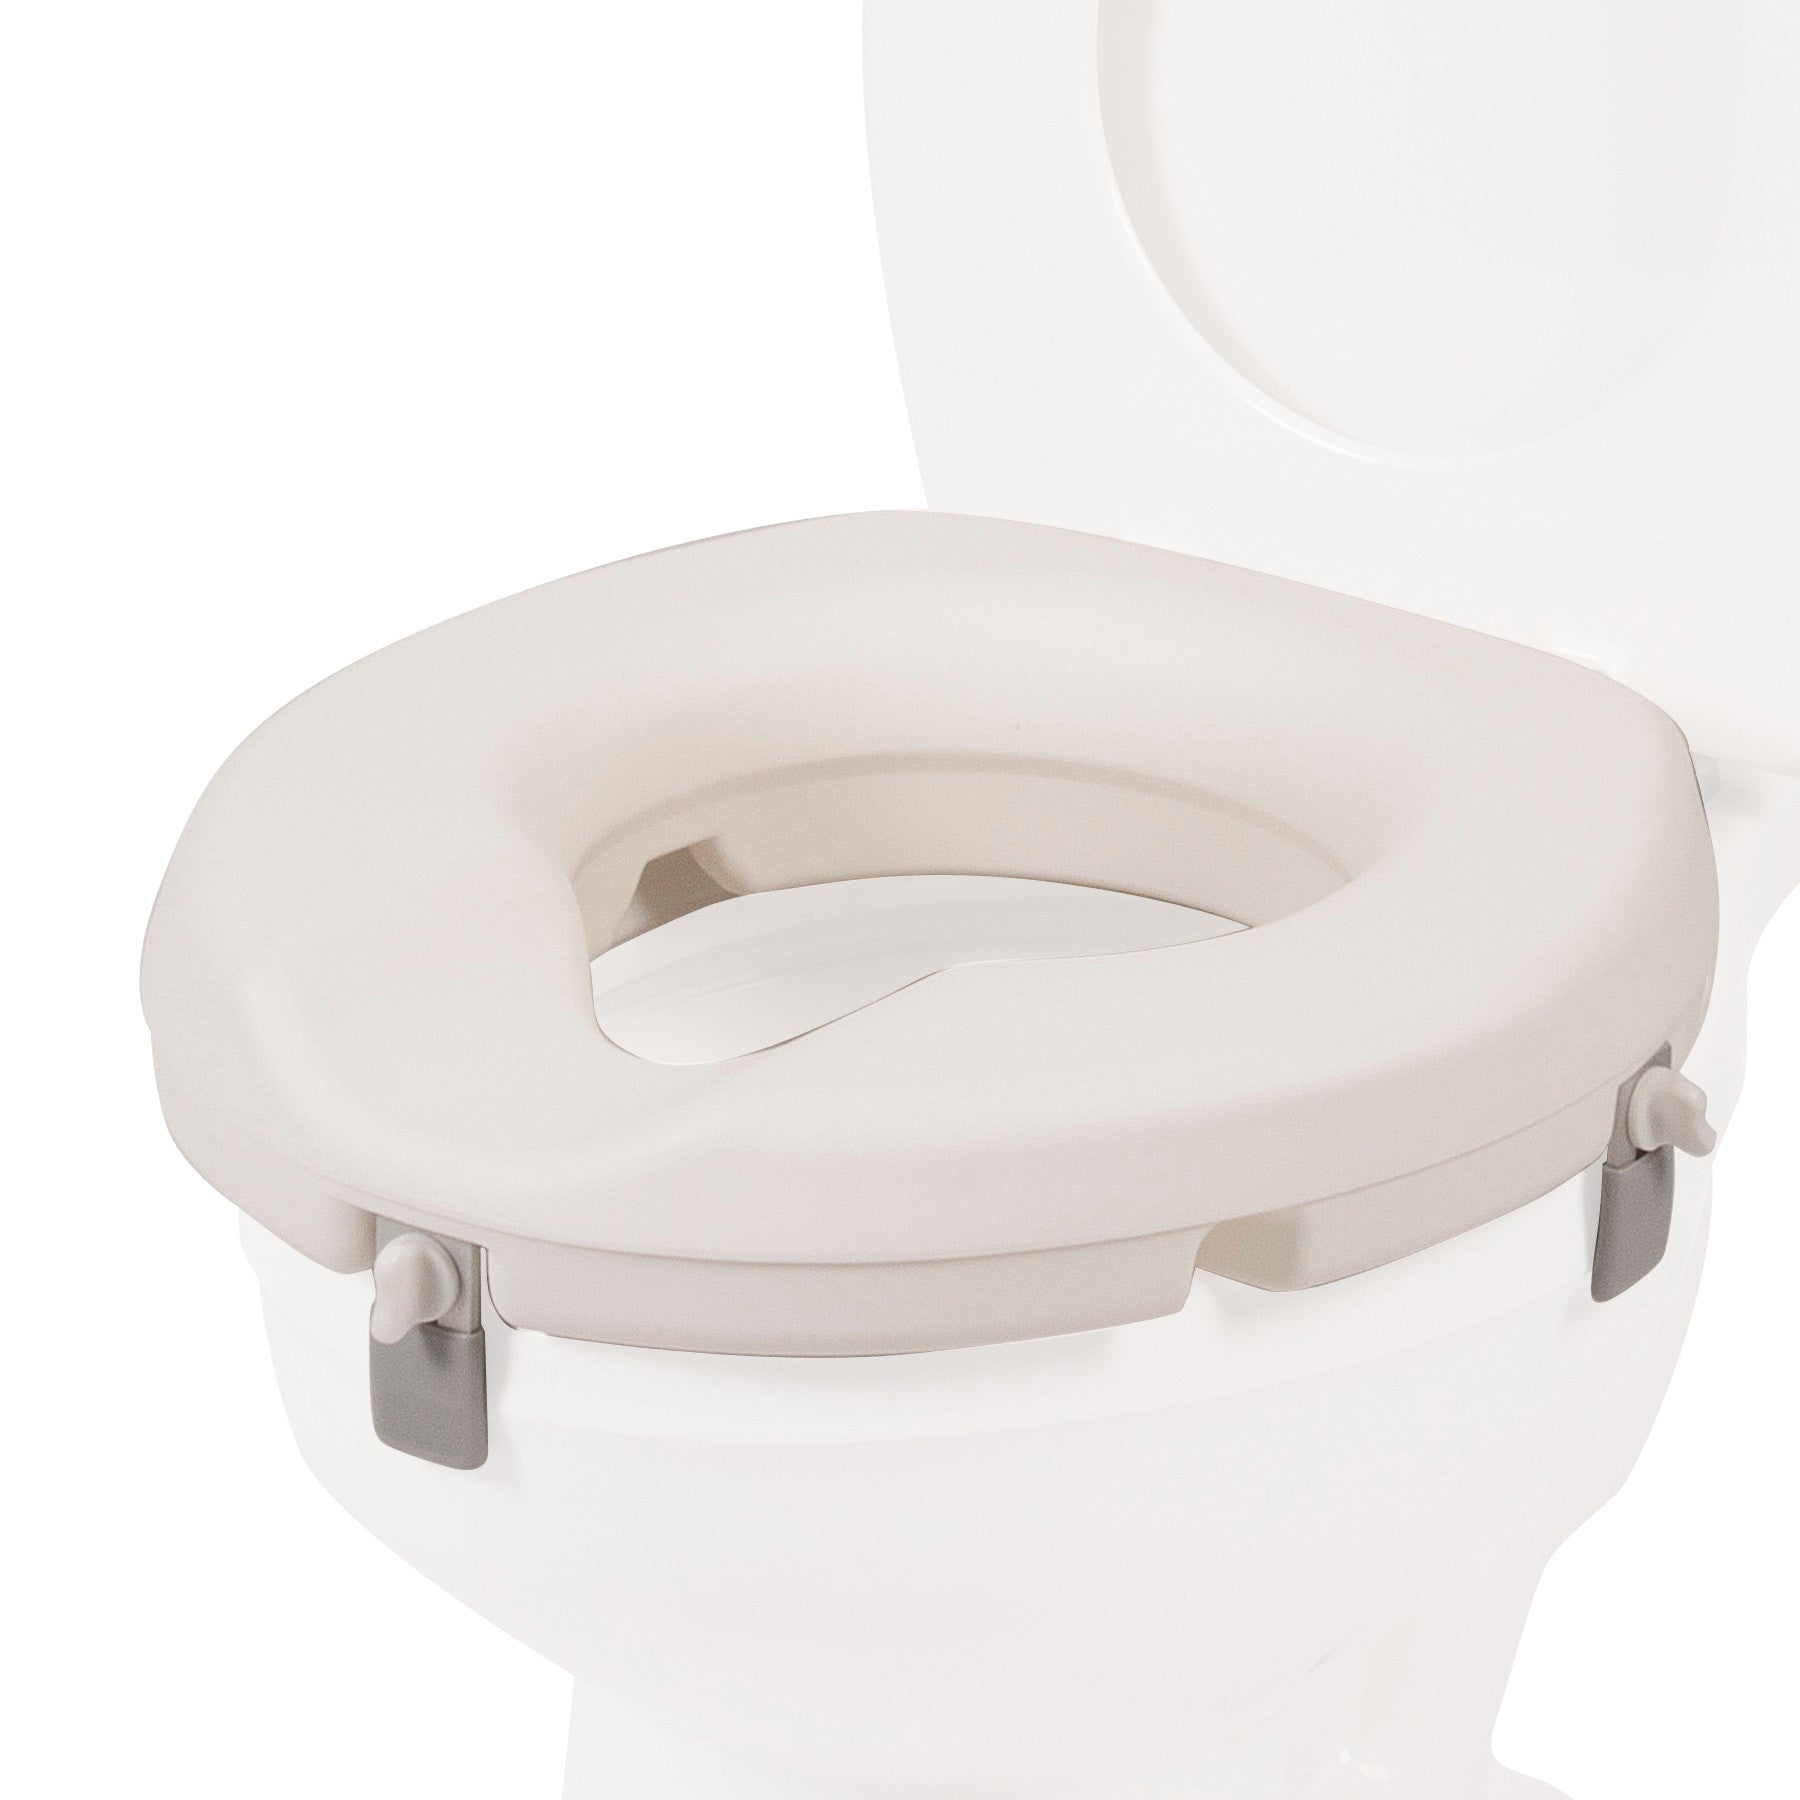 7019 3 Quot Universal Raised Toilet Seat Pcpmedical